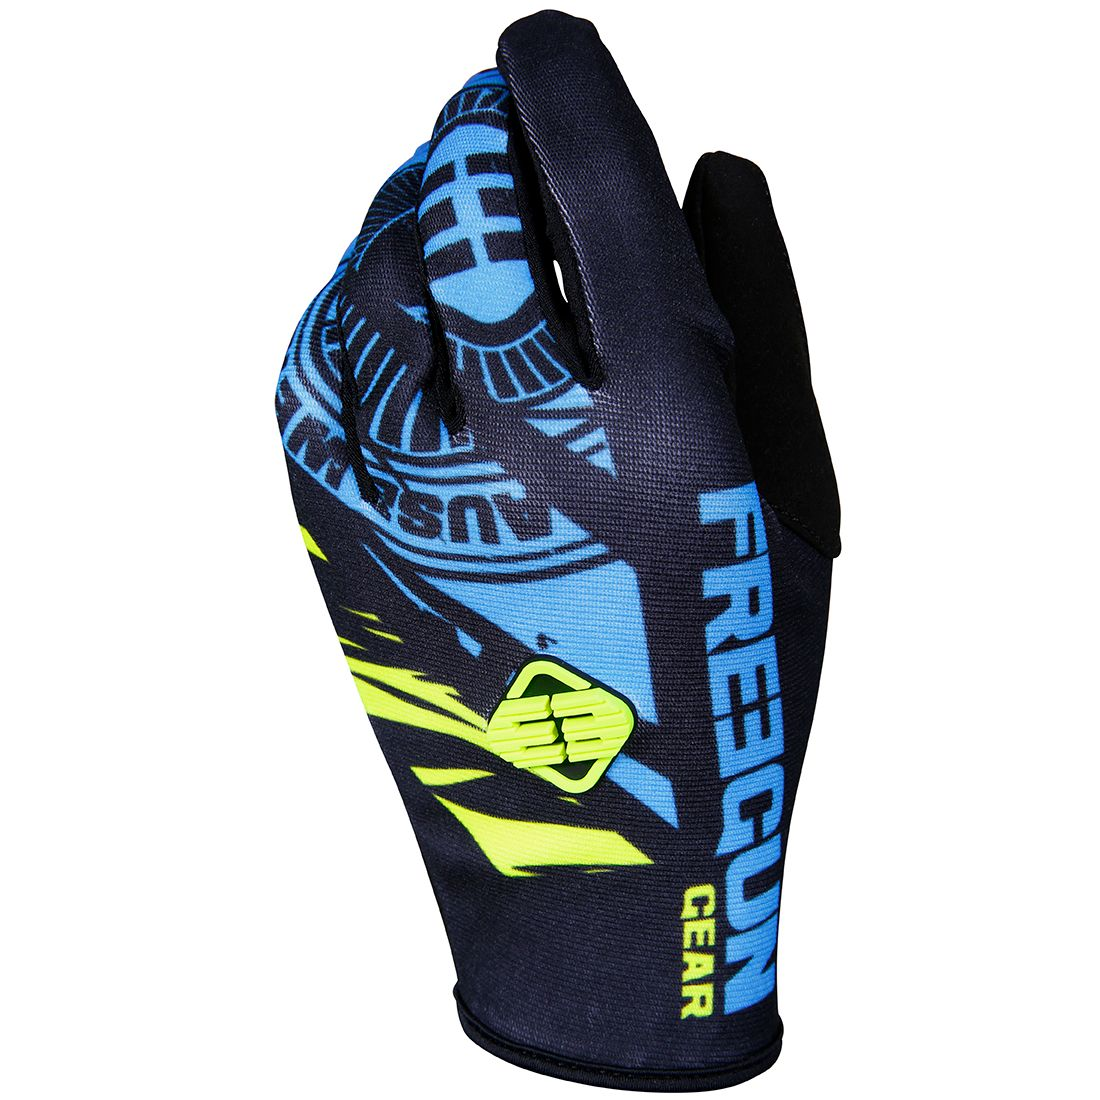 Gants cross Shot by Freegun DEVO NERVE BLUE ENFANT